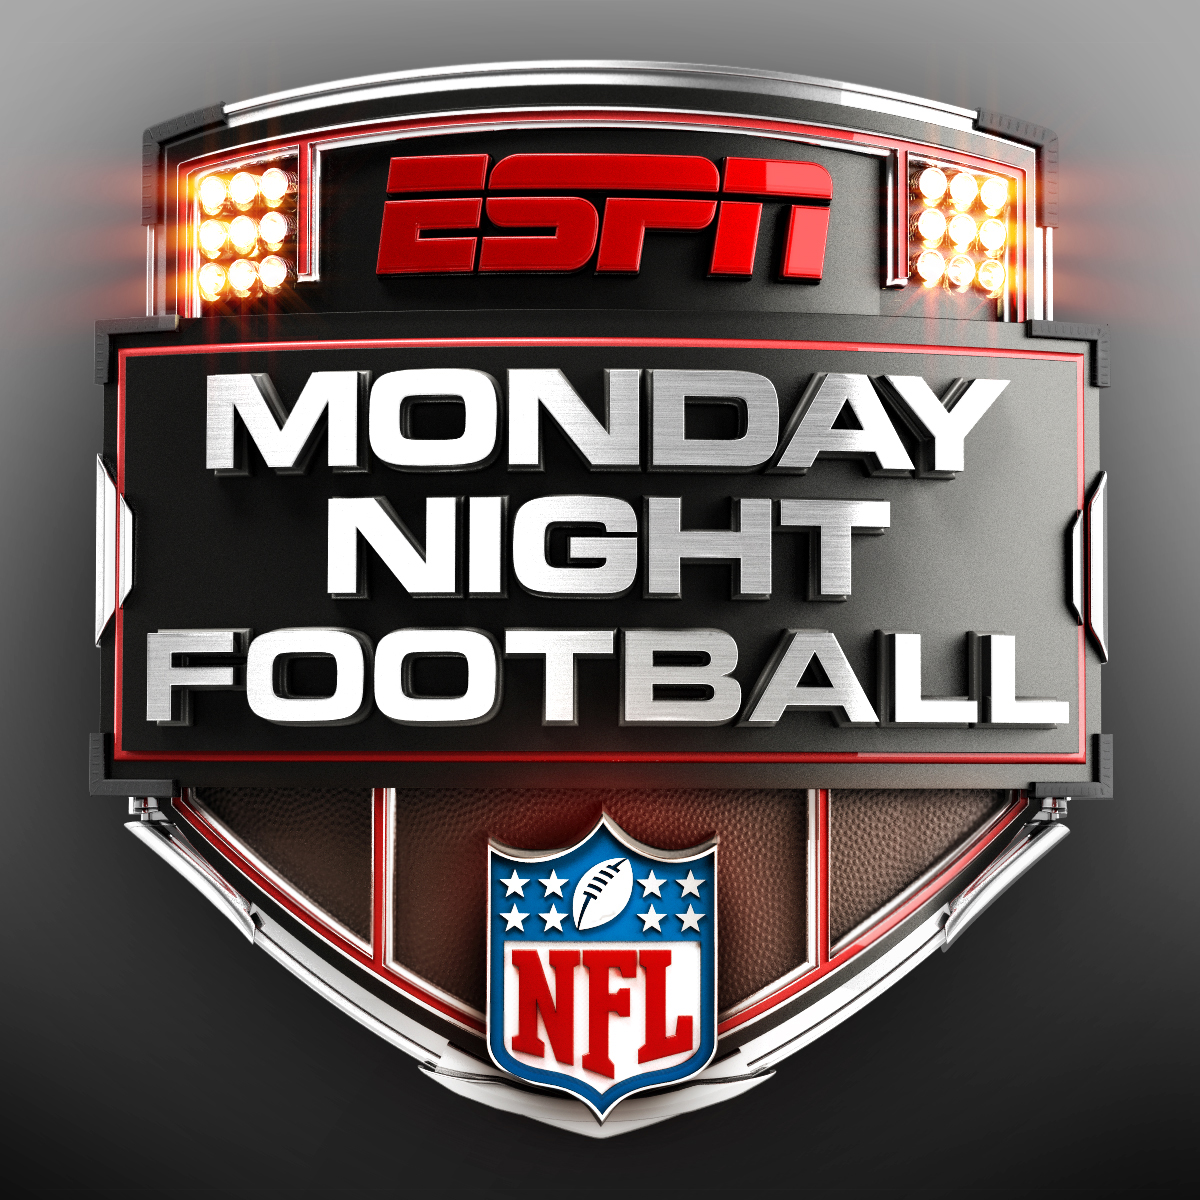 What We Know About Monday Night Football In 2014